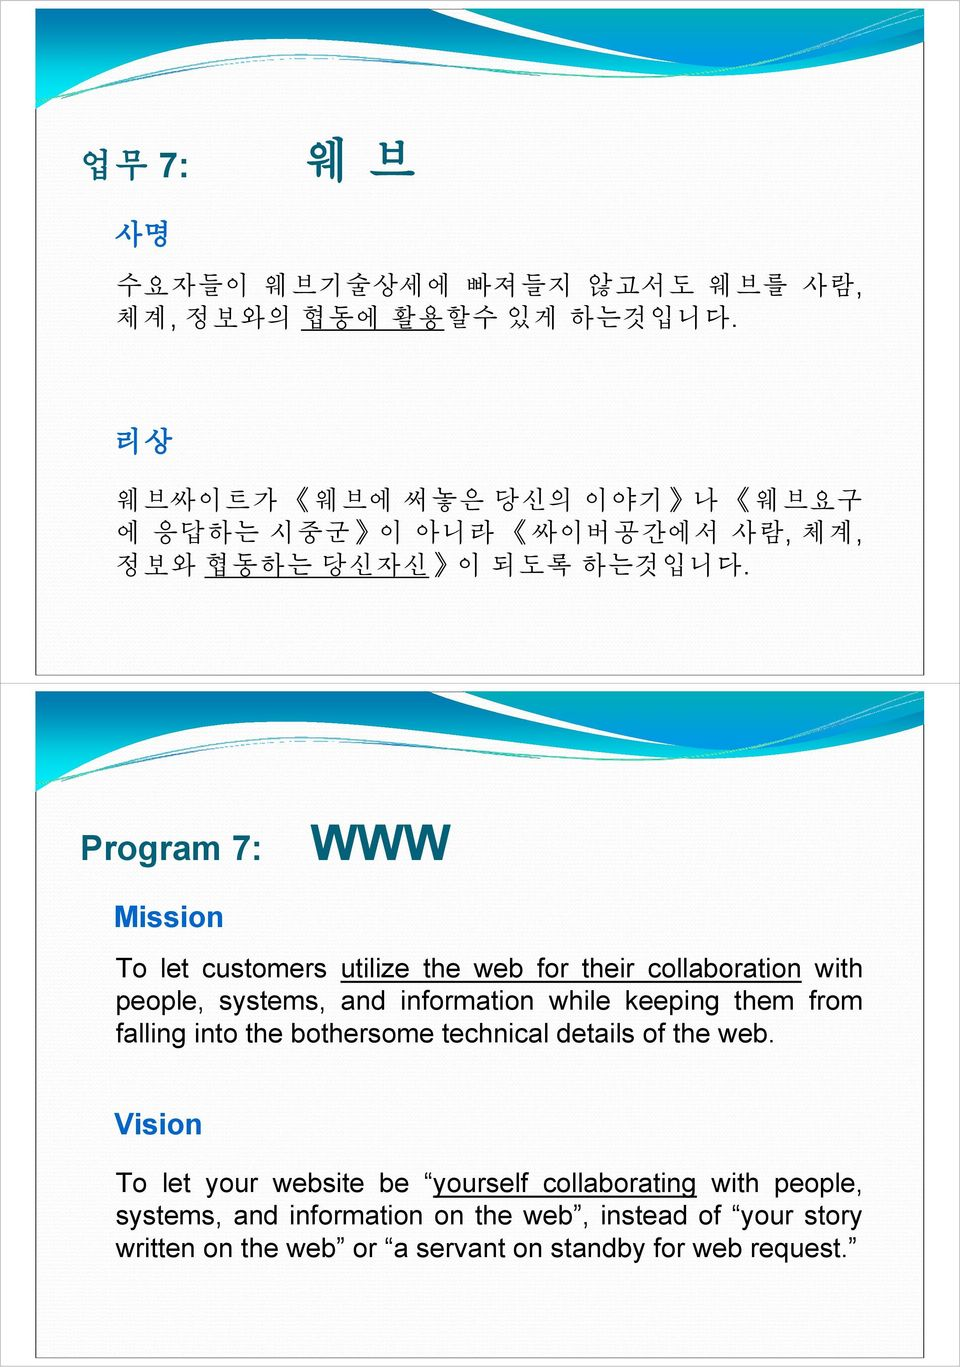 Program 7: WWW Mission To let customers utilize the web for their collaboration with people, systems, and information while keeping them